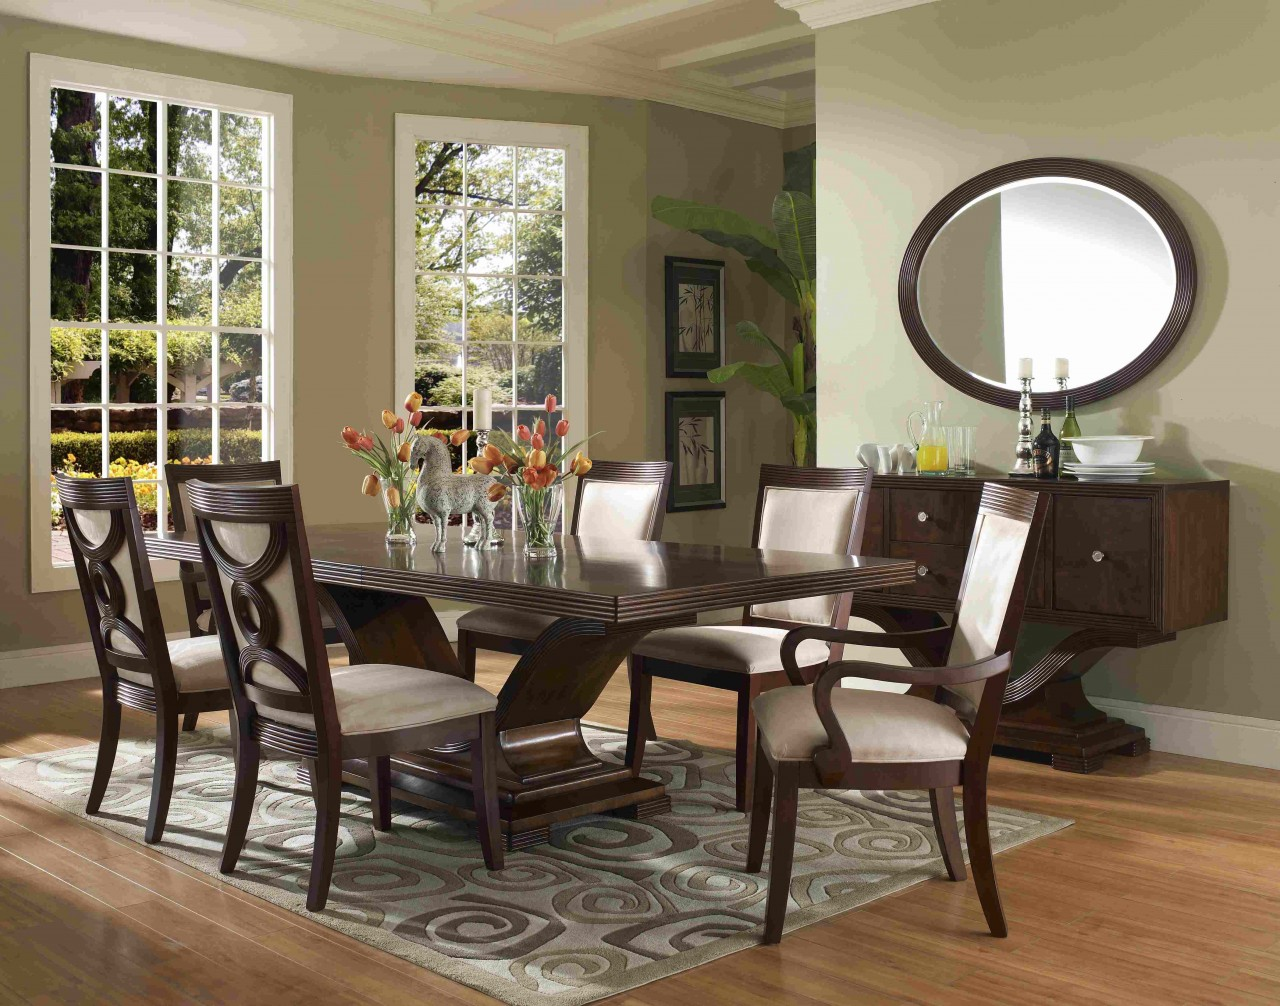 Perfect formal dining room sets for 8 homesfeed for Formal dining room furniture sets